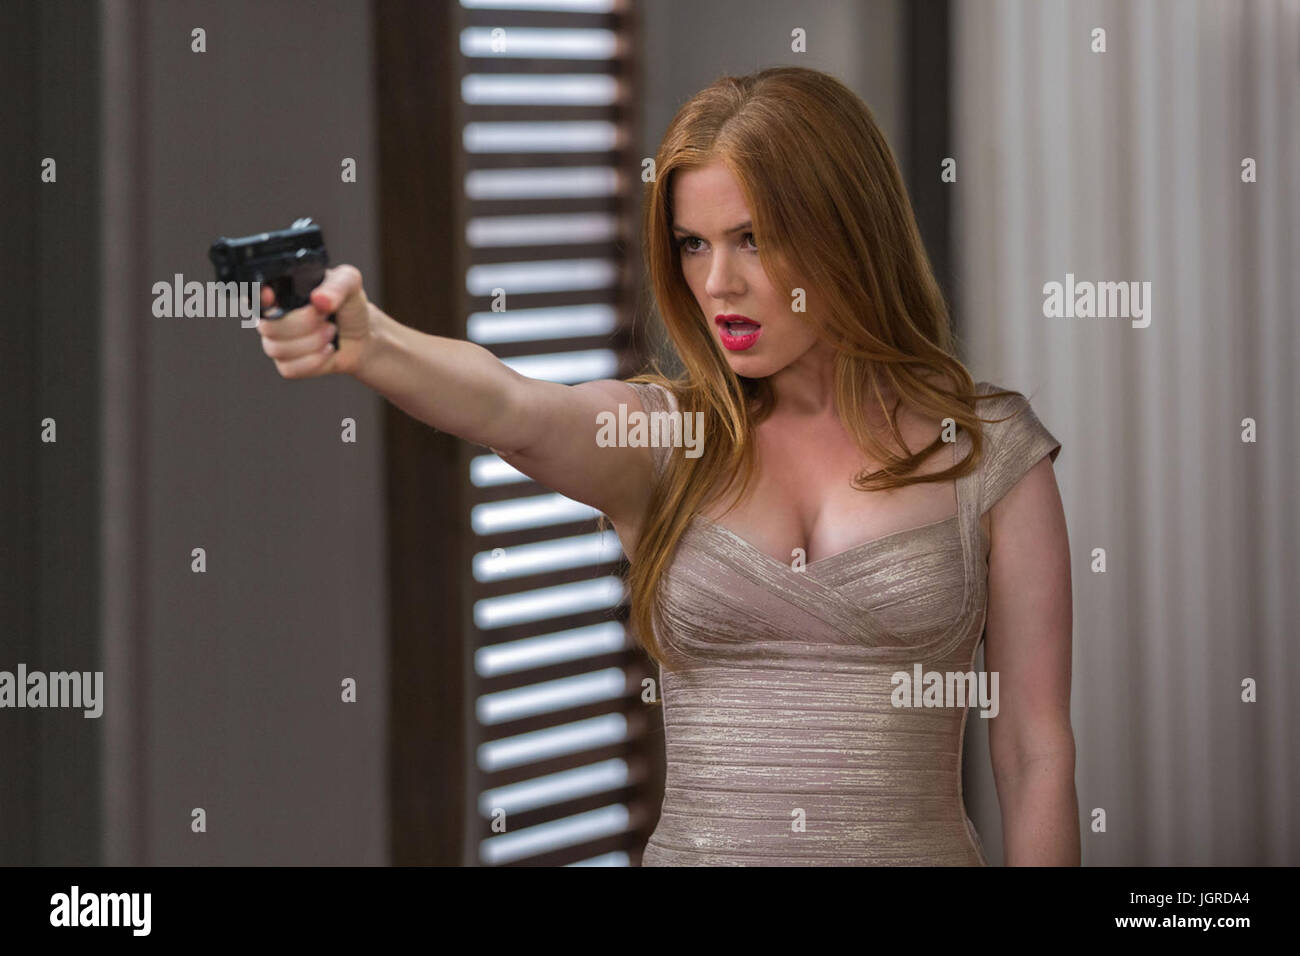 Keeping Up With The Joneses Download: KEEPING UP WITH THE JONESES (2016) ISLA FISHER GREG